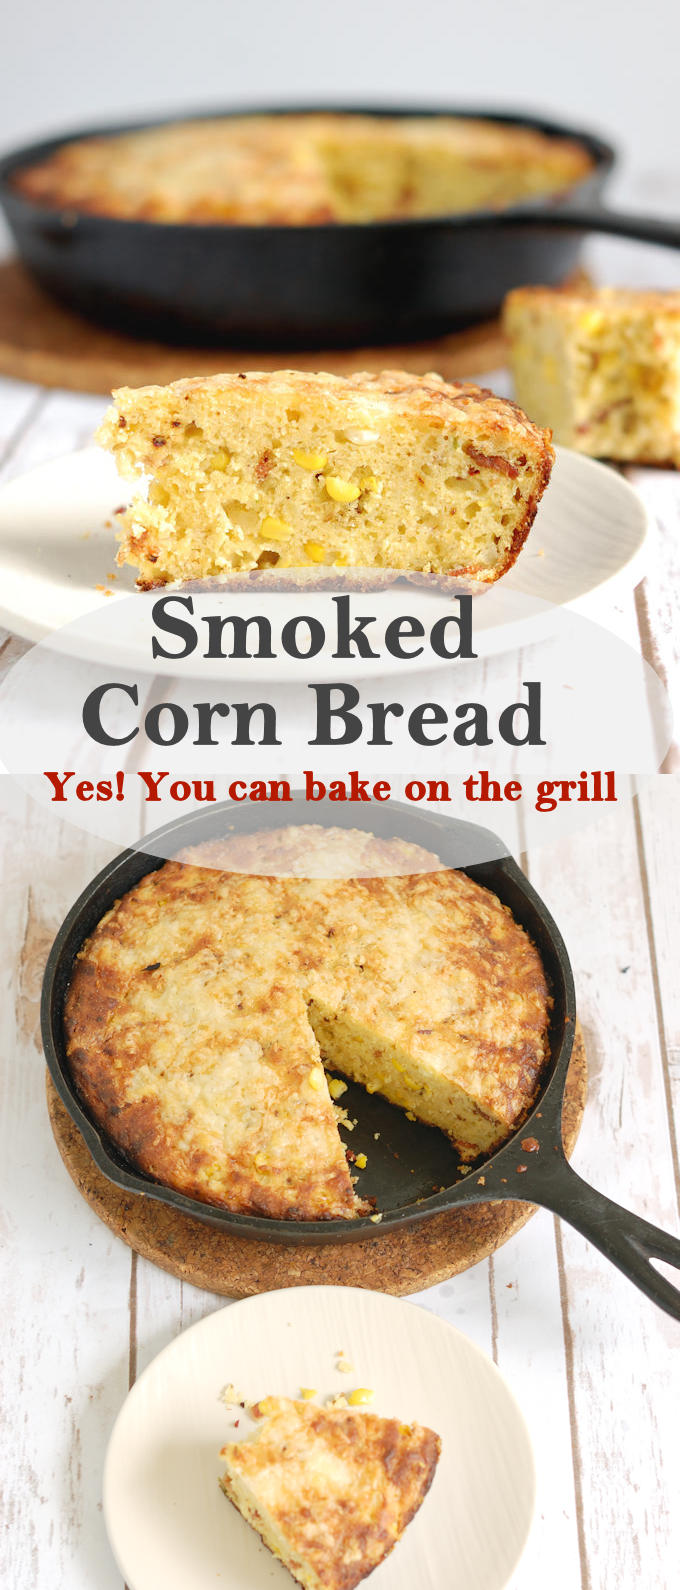 Mmmm, smoky corn bread baked right on the grill! Why turn on the oven and heat up the kitchen when you can bake on the grill? #Cookoutweek #